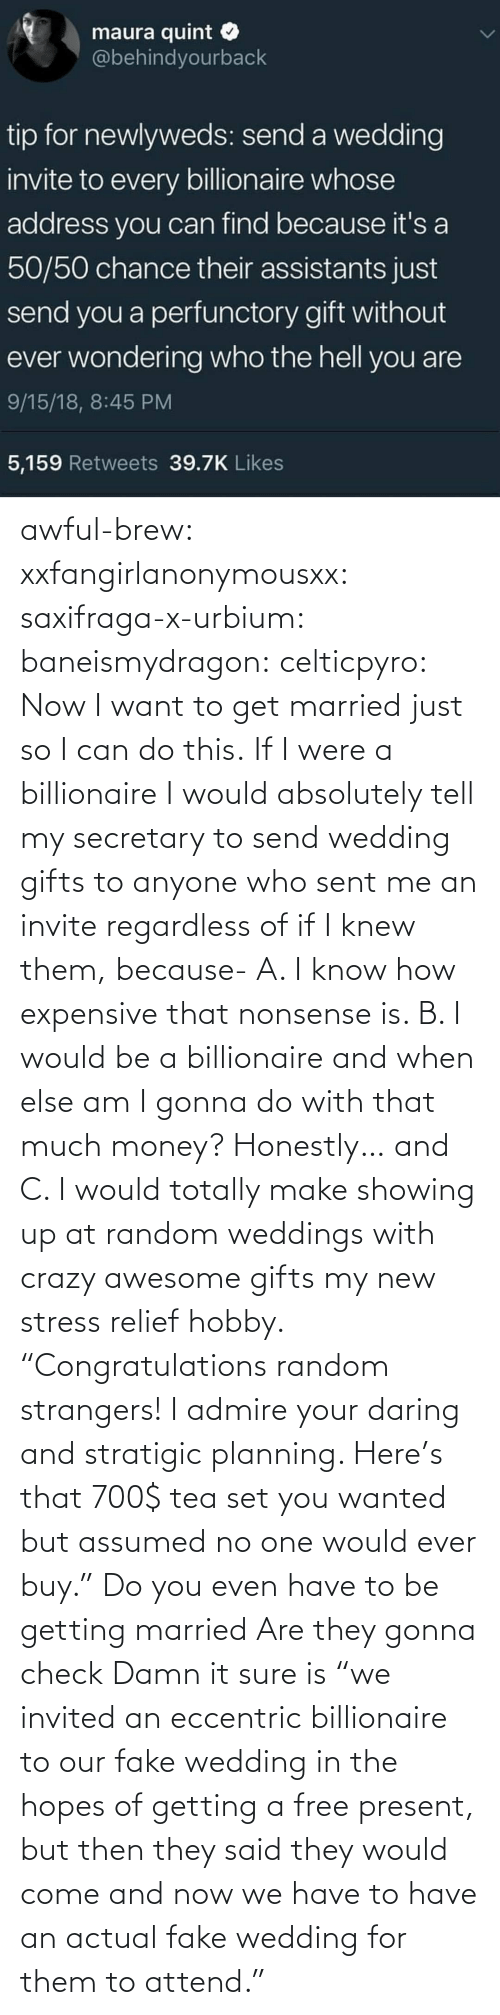 "random: awful-brew:  xxfangirlanonymousxx:  saxifraga-x-urbium:  baneismydragon:  celticpyro: Now I want to get married just so I can do this.  If I were a billionaire I would absolutely tell my secretary to send wedding gifts to anyone who sent me an invite regardless of if I knew them, because- A. I know how expensive that nonsense is. B. I would be a billionaire and when else am I gonna do with that much money? Honestly… and C. I would totally make showing up at random weddings with crazy awesome gifts my new stress relief hobby. ""Congratulations random strangers! I admire your daring and stratigic planning. Here's that 700$ tea set you wanted but assumed no one would ever buy.""   Do you even have to be getting married Are they gonna check   Damn it sure is  ""we invited an eccentric billionaire to our fake wedding in the hopes of getting a free present, but then they said they would come and now we have to have an actual fake wedding for them to attend."""